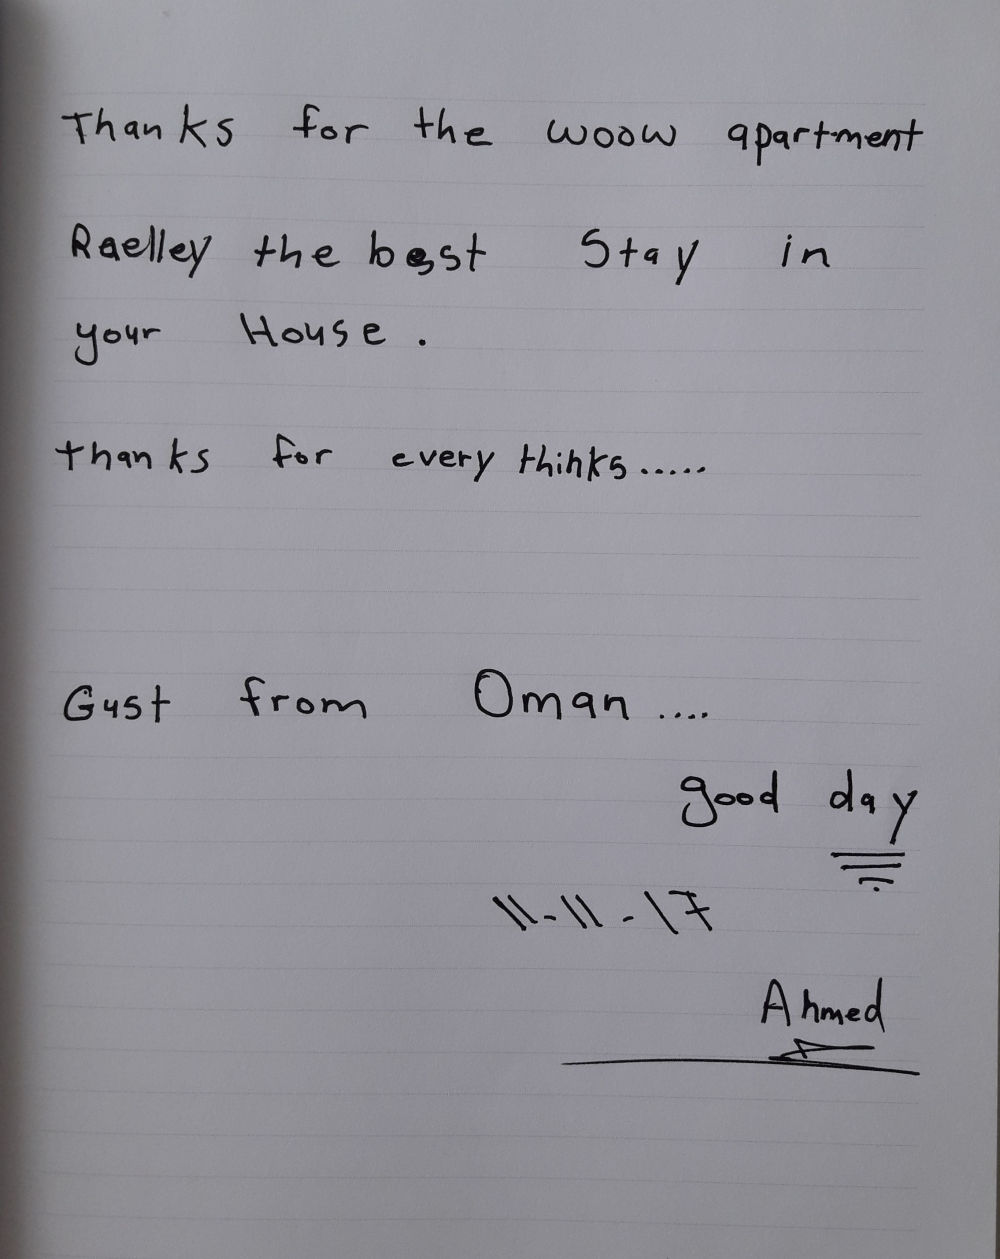 A handwritten note from the guests